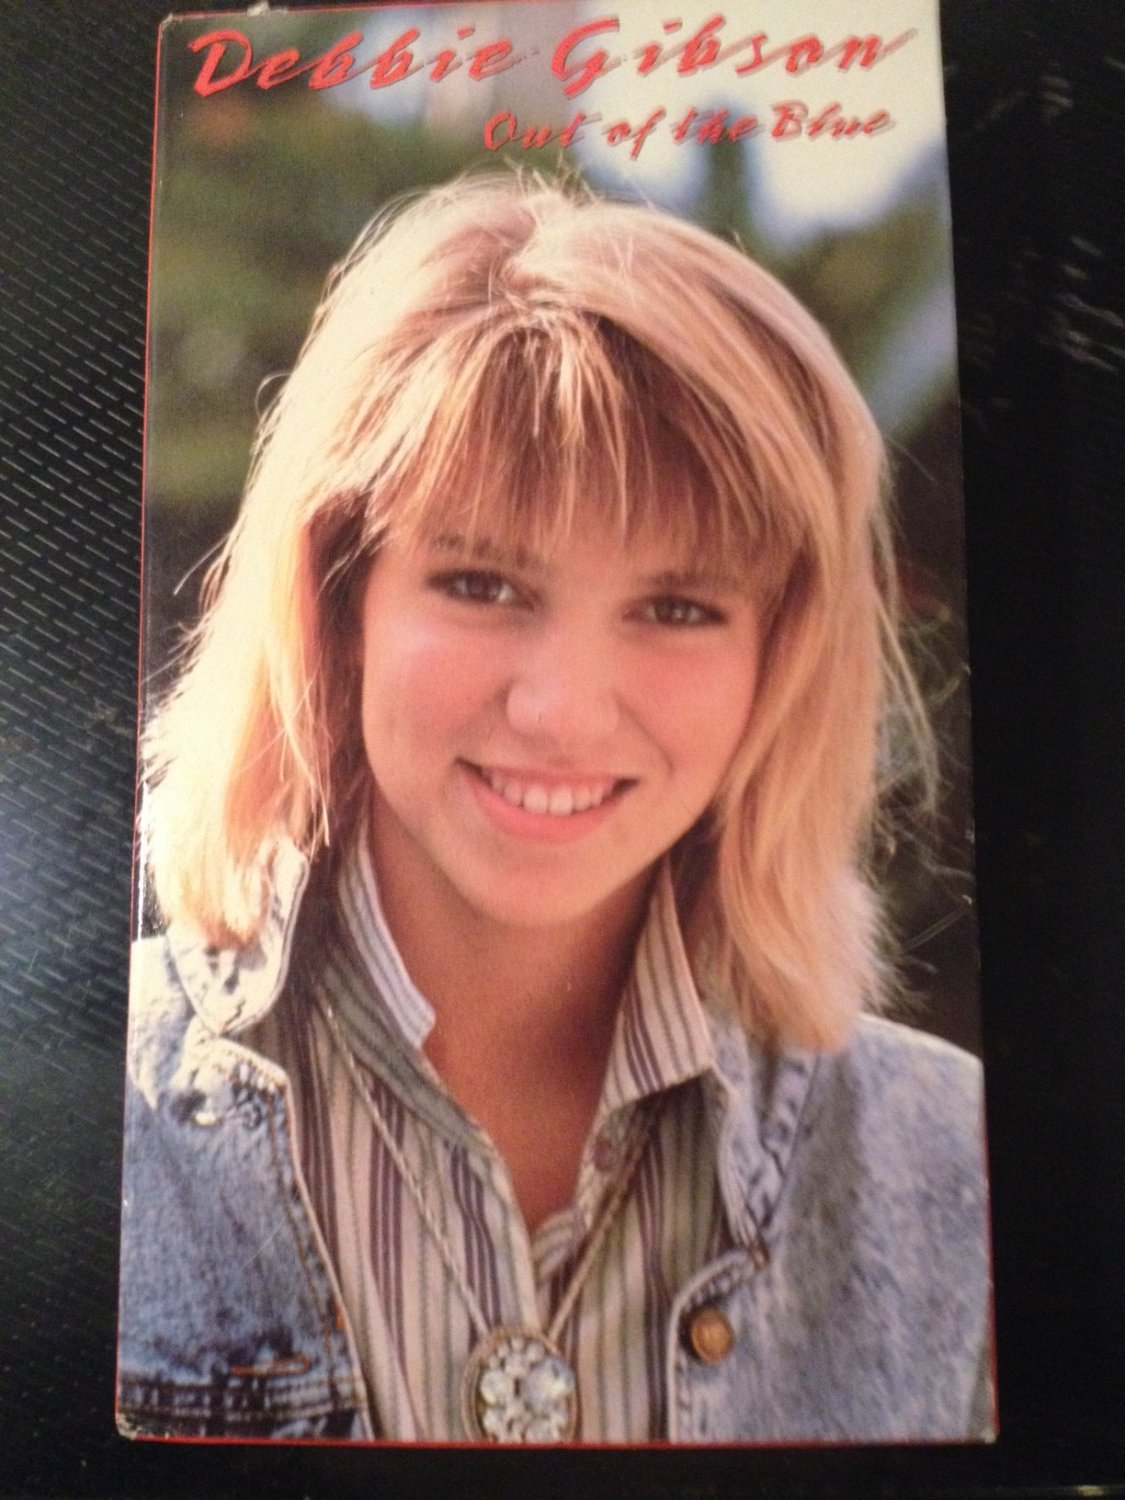 VHS - Debbie Gibson: Out of the Blue - Used - NOT ON DVD